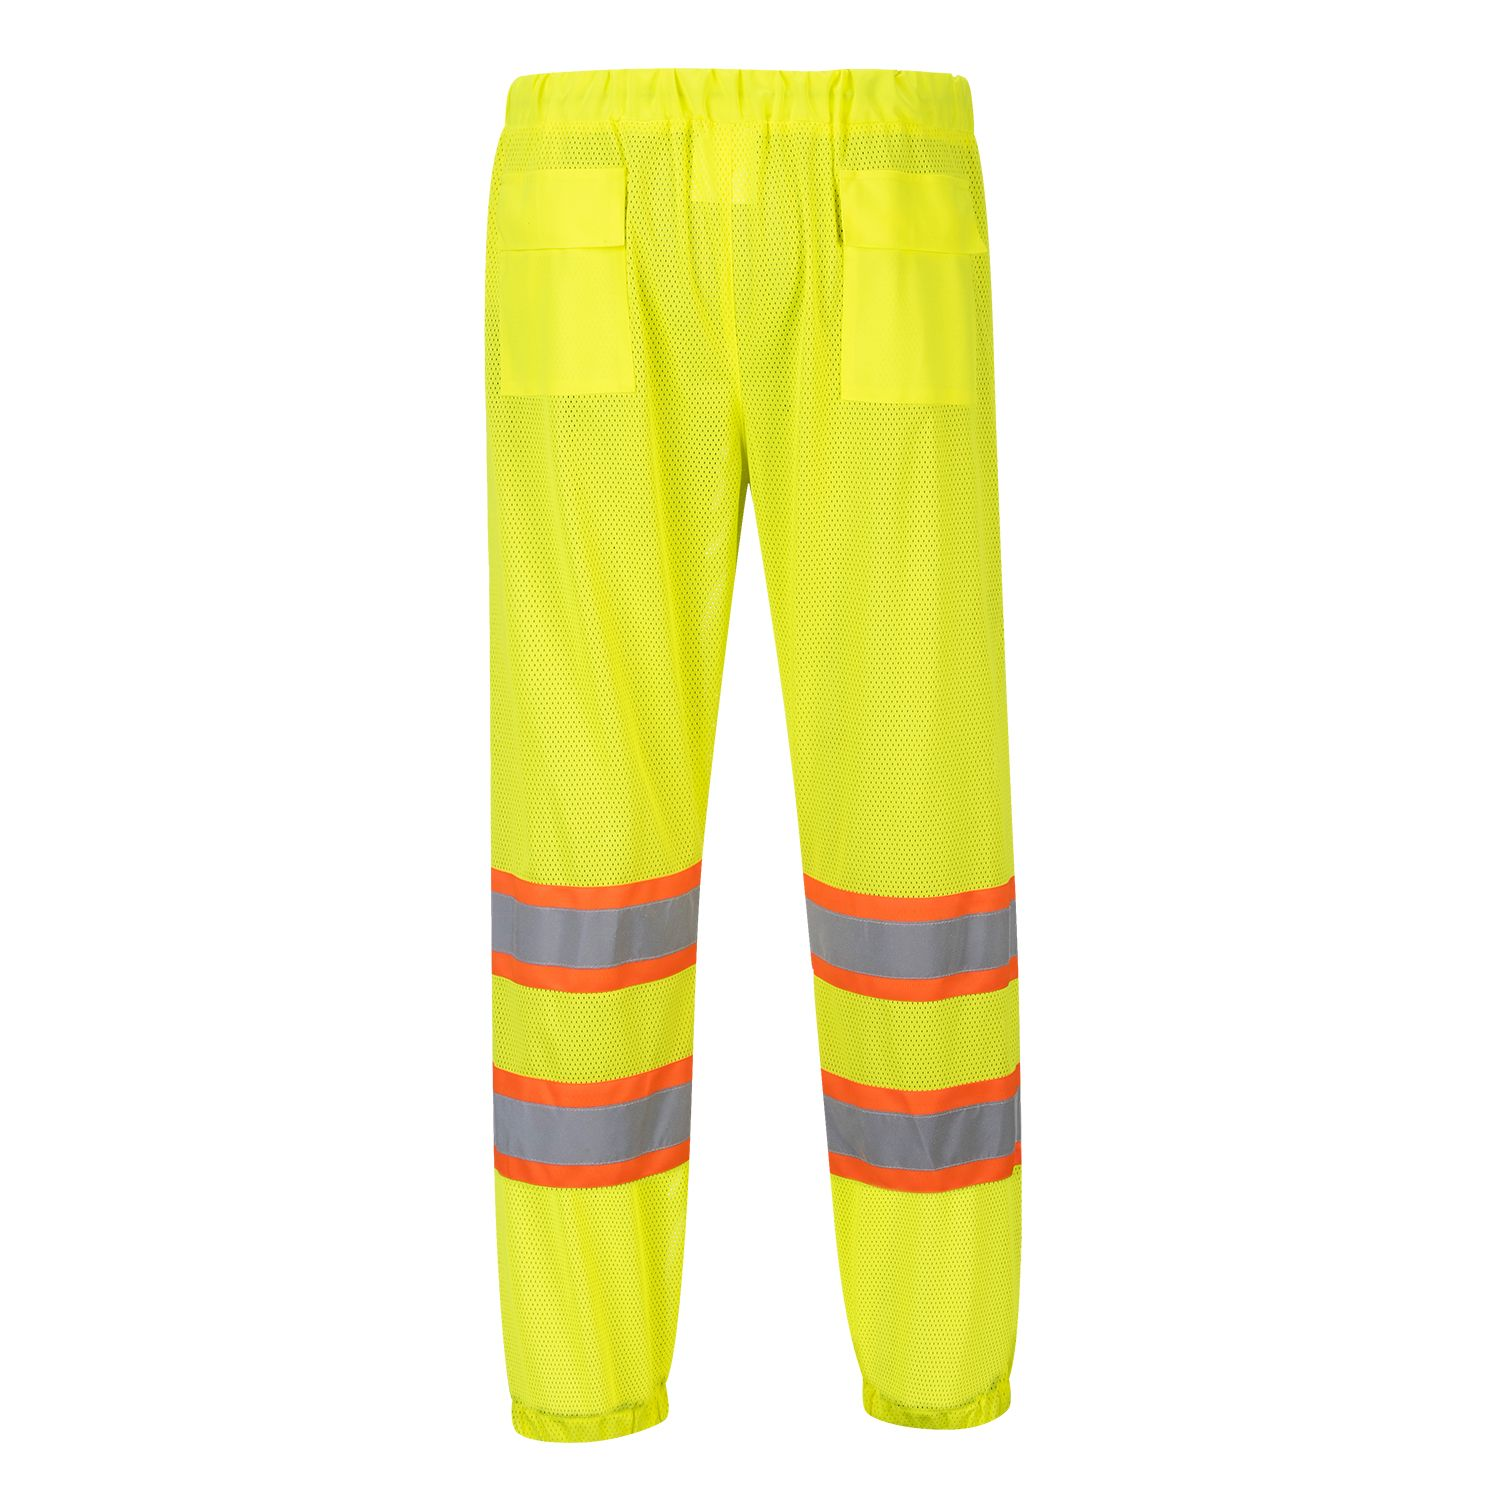 us386 portwest mesh overpants